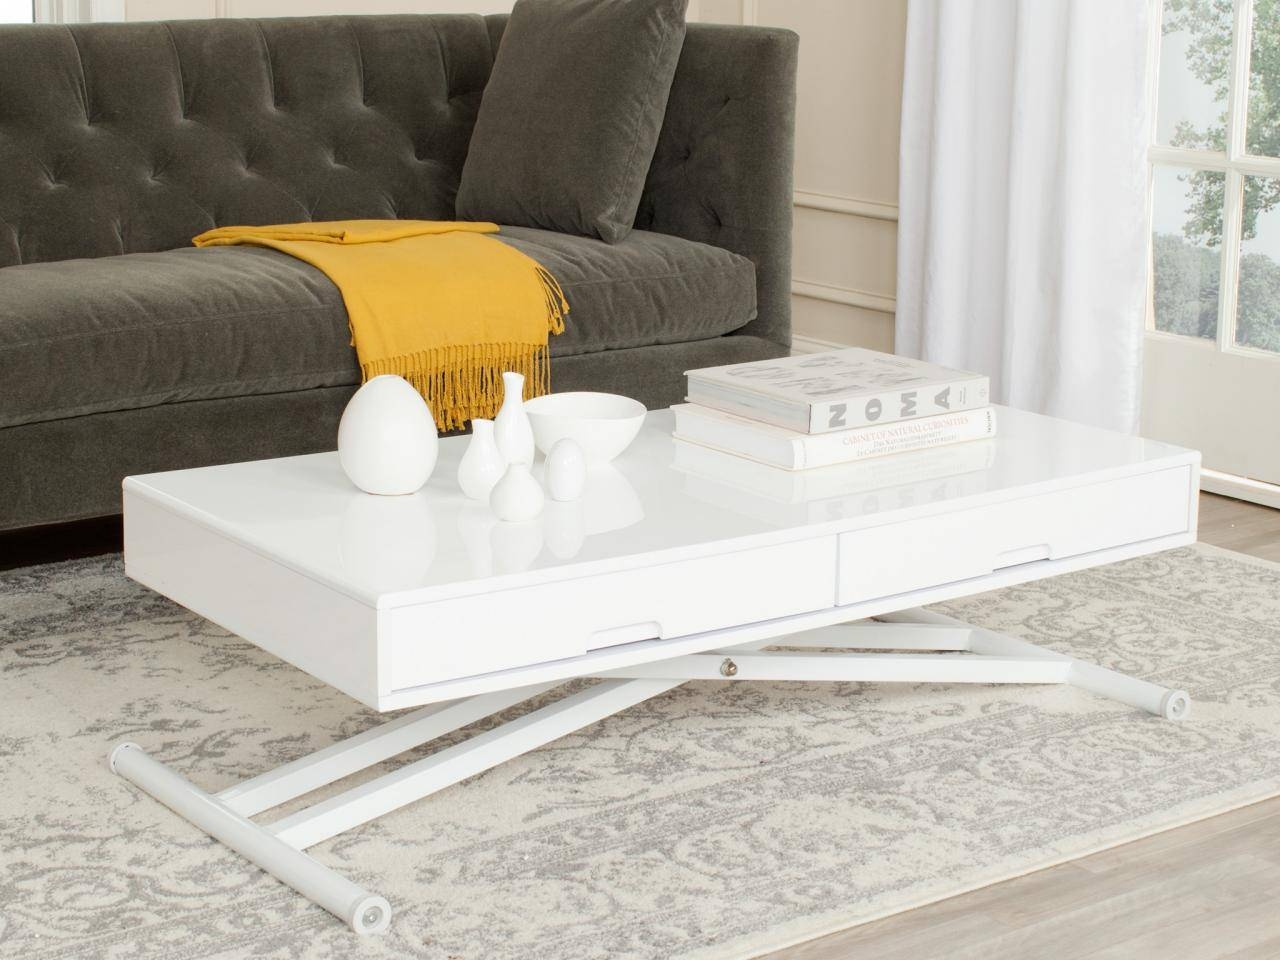 Coffee Table Styling Ideas | Hgtv's Decorating & Design Blog | Hgtv throughout Stylish Coffee Tables (Image 4 of 30)